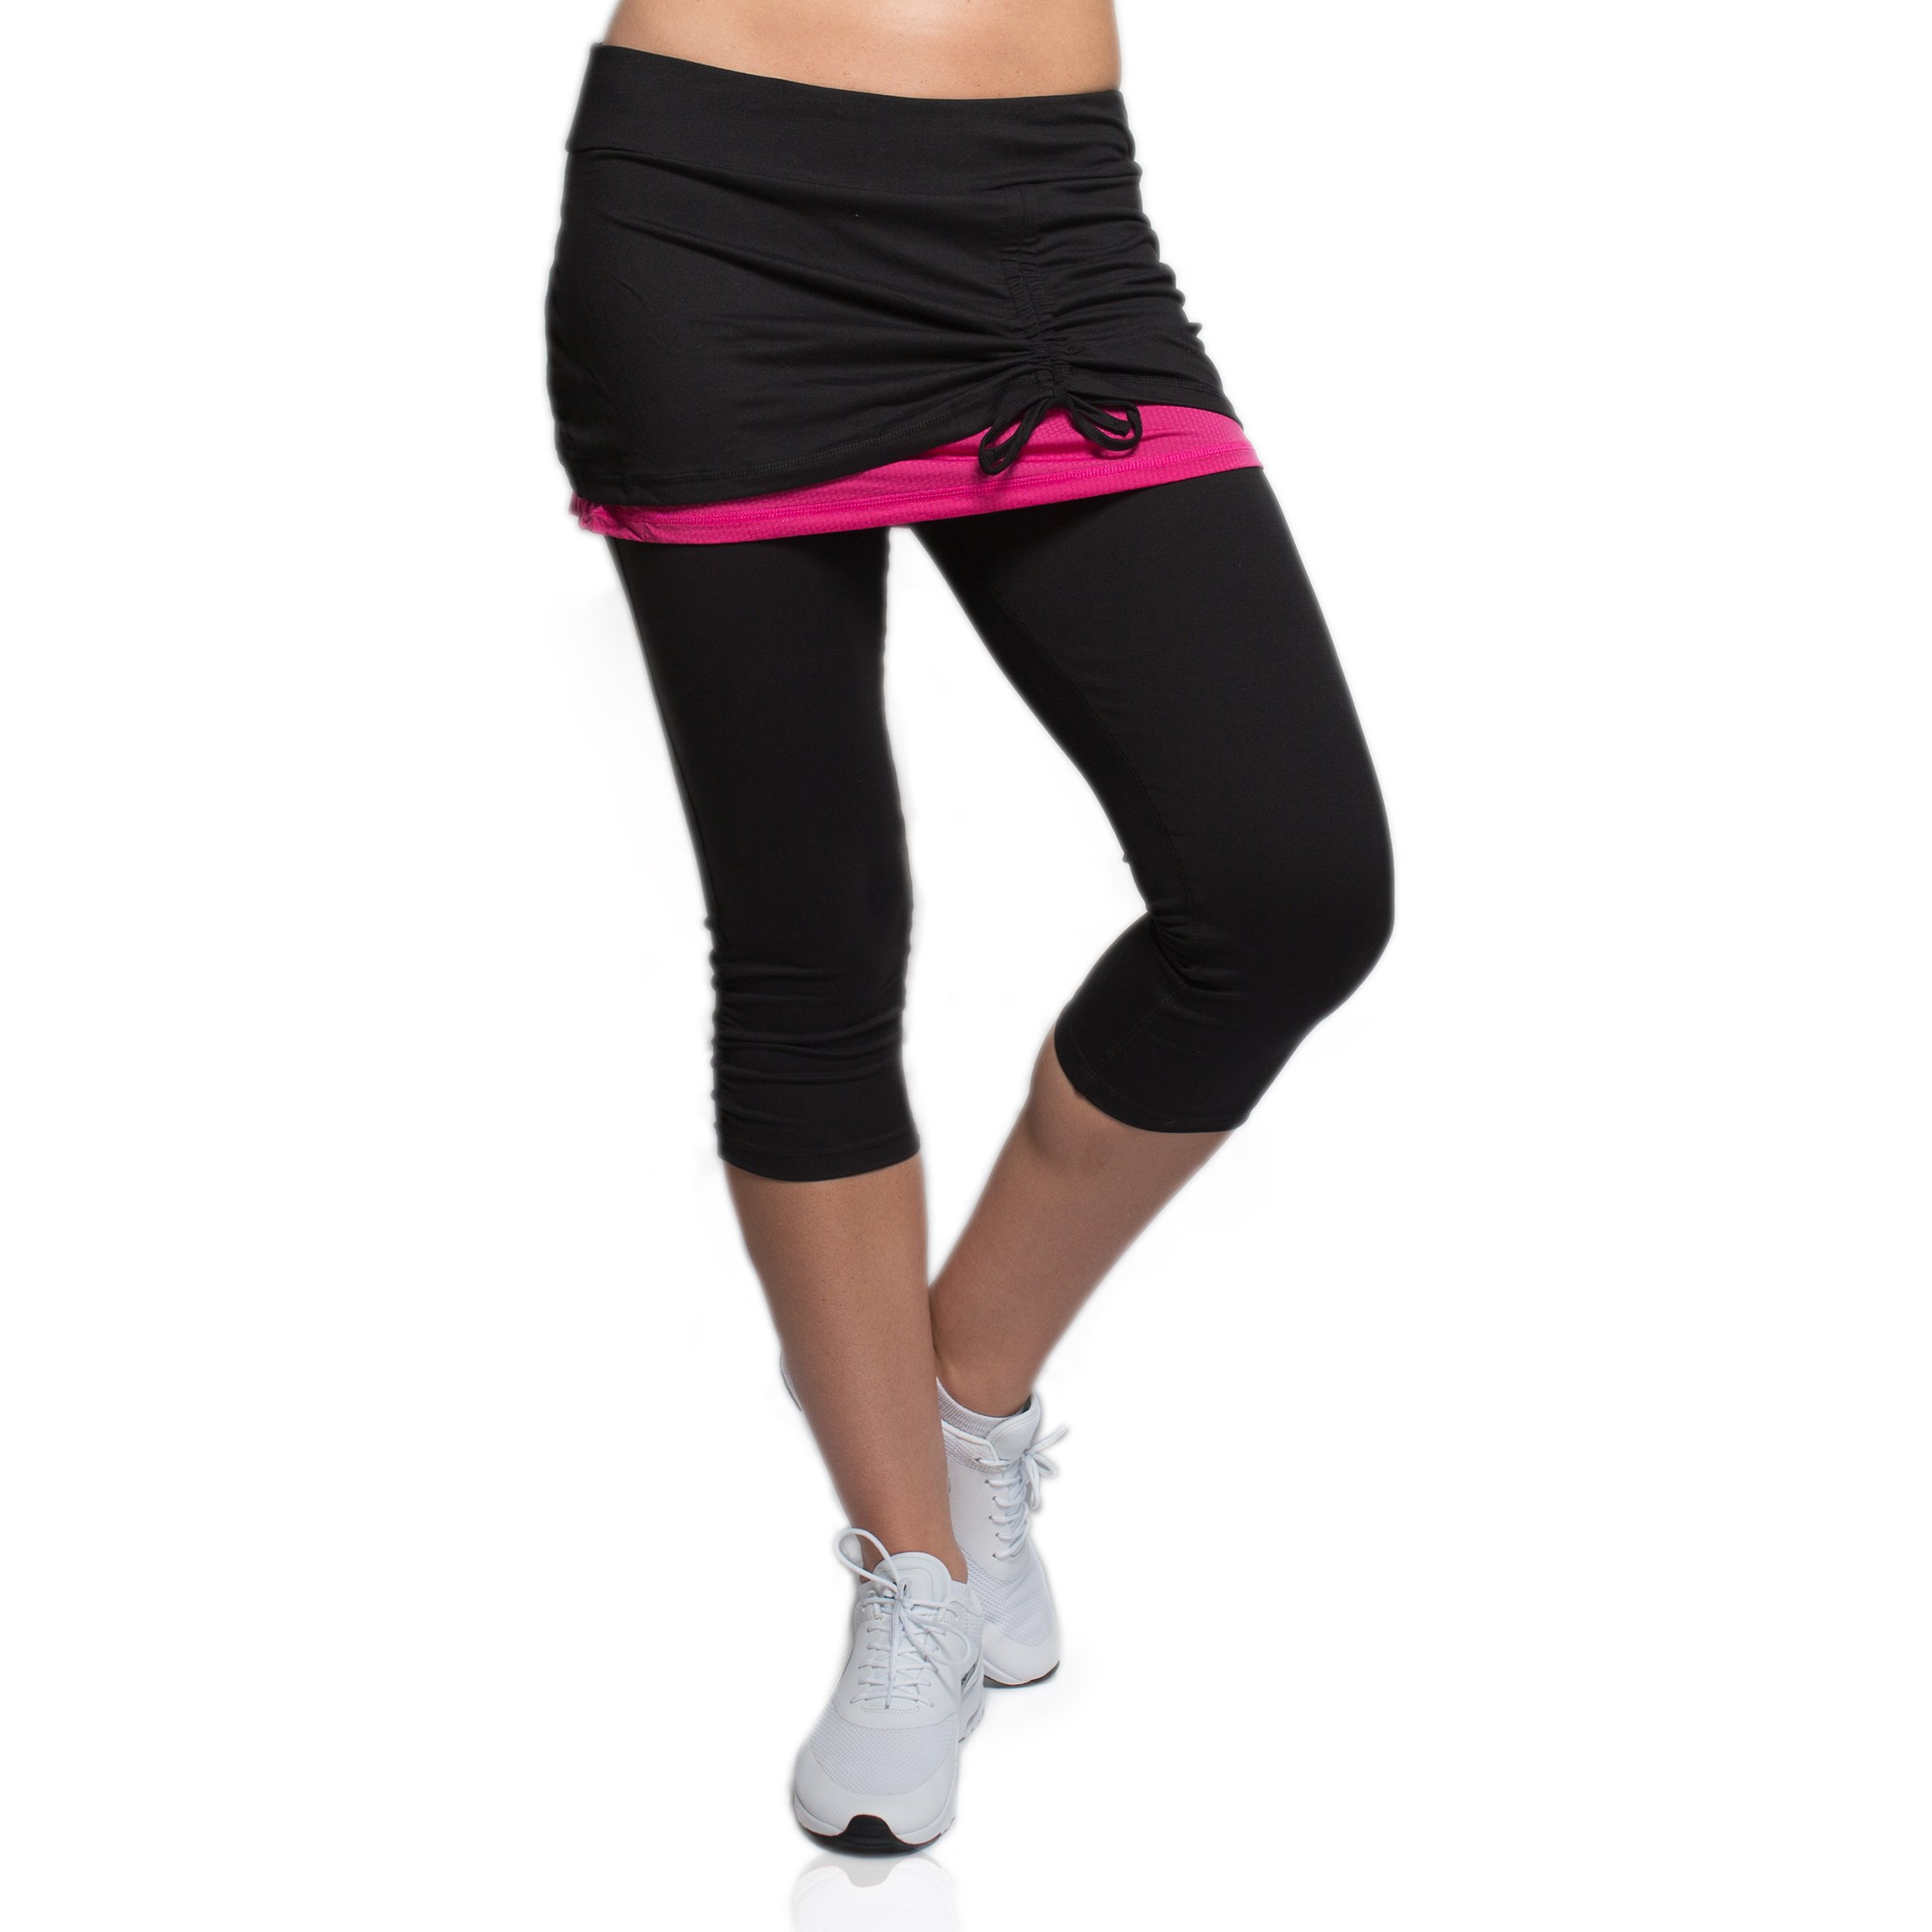 Alex + Abby Women's Energy Skirted Capri Legging Large Black/Magenta